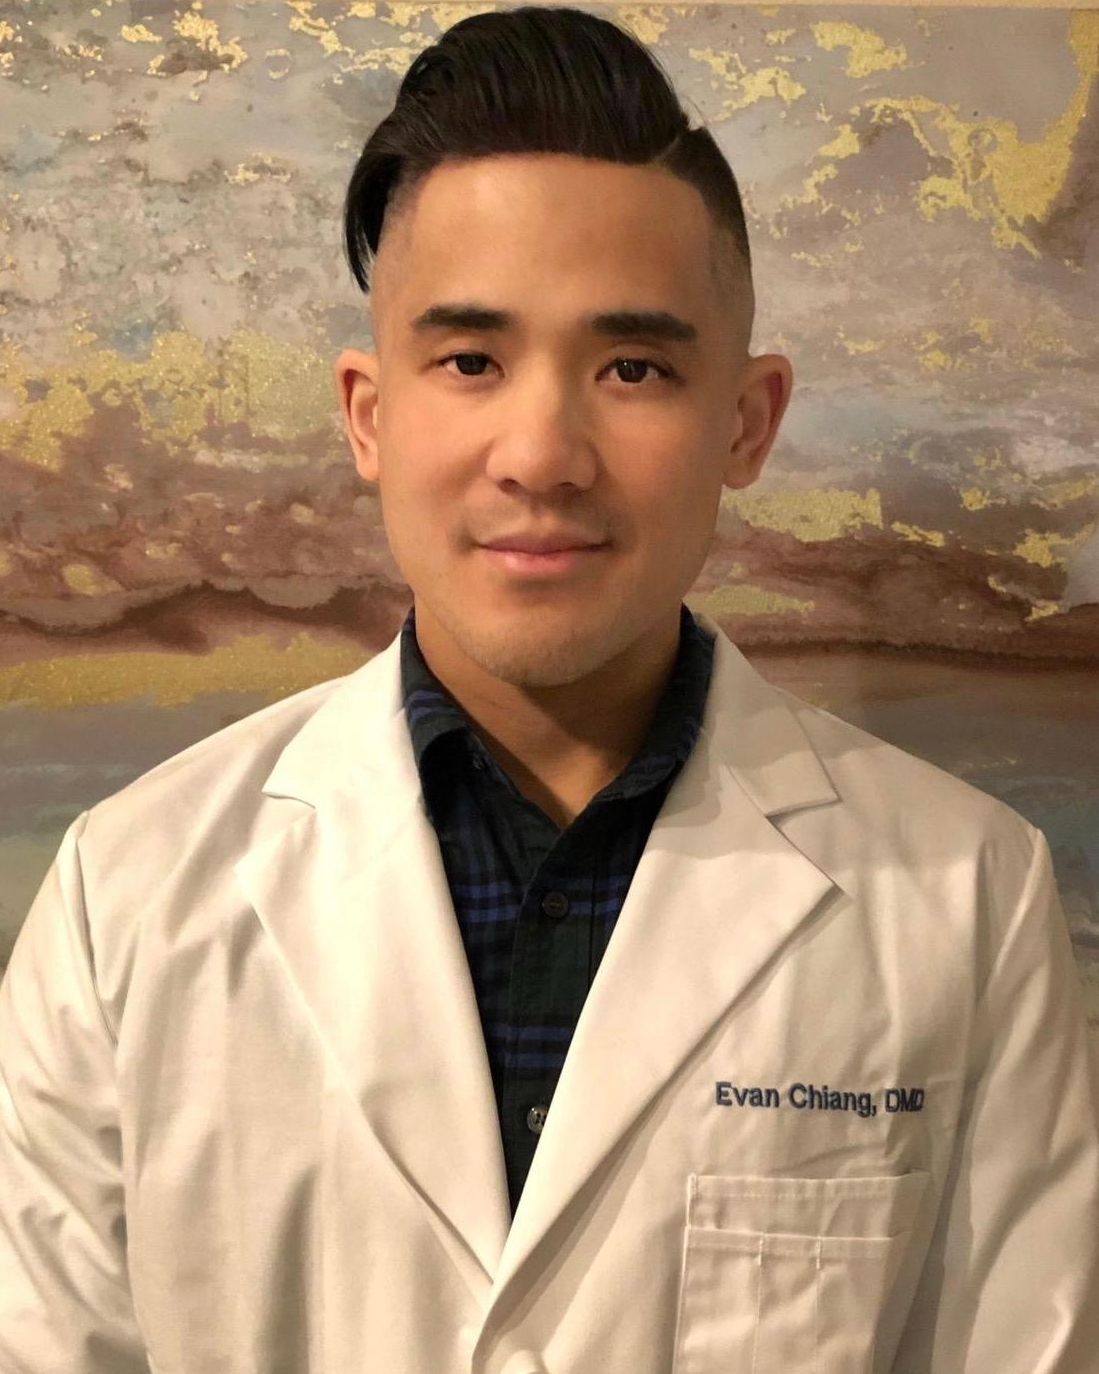 Dr. Evan ChiangDMD